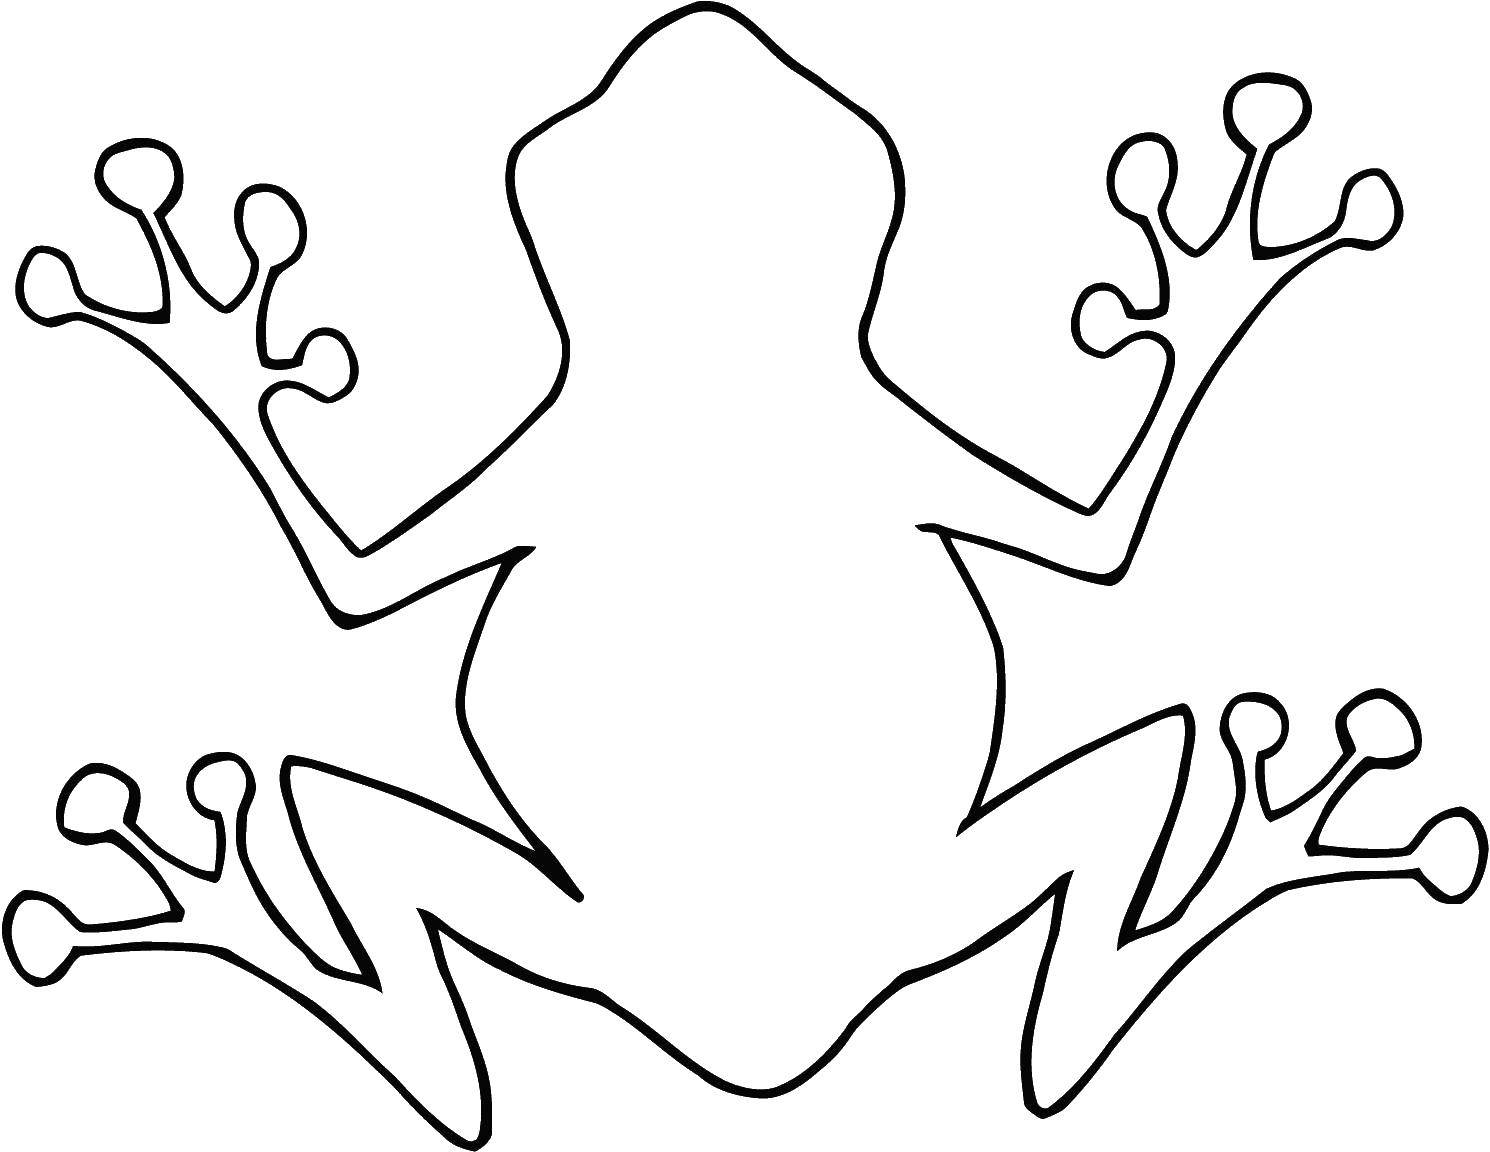 Coloring Frog. Category The contours of animals. Tags:  the frog, the outline of lagowski.